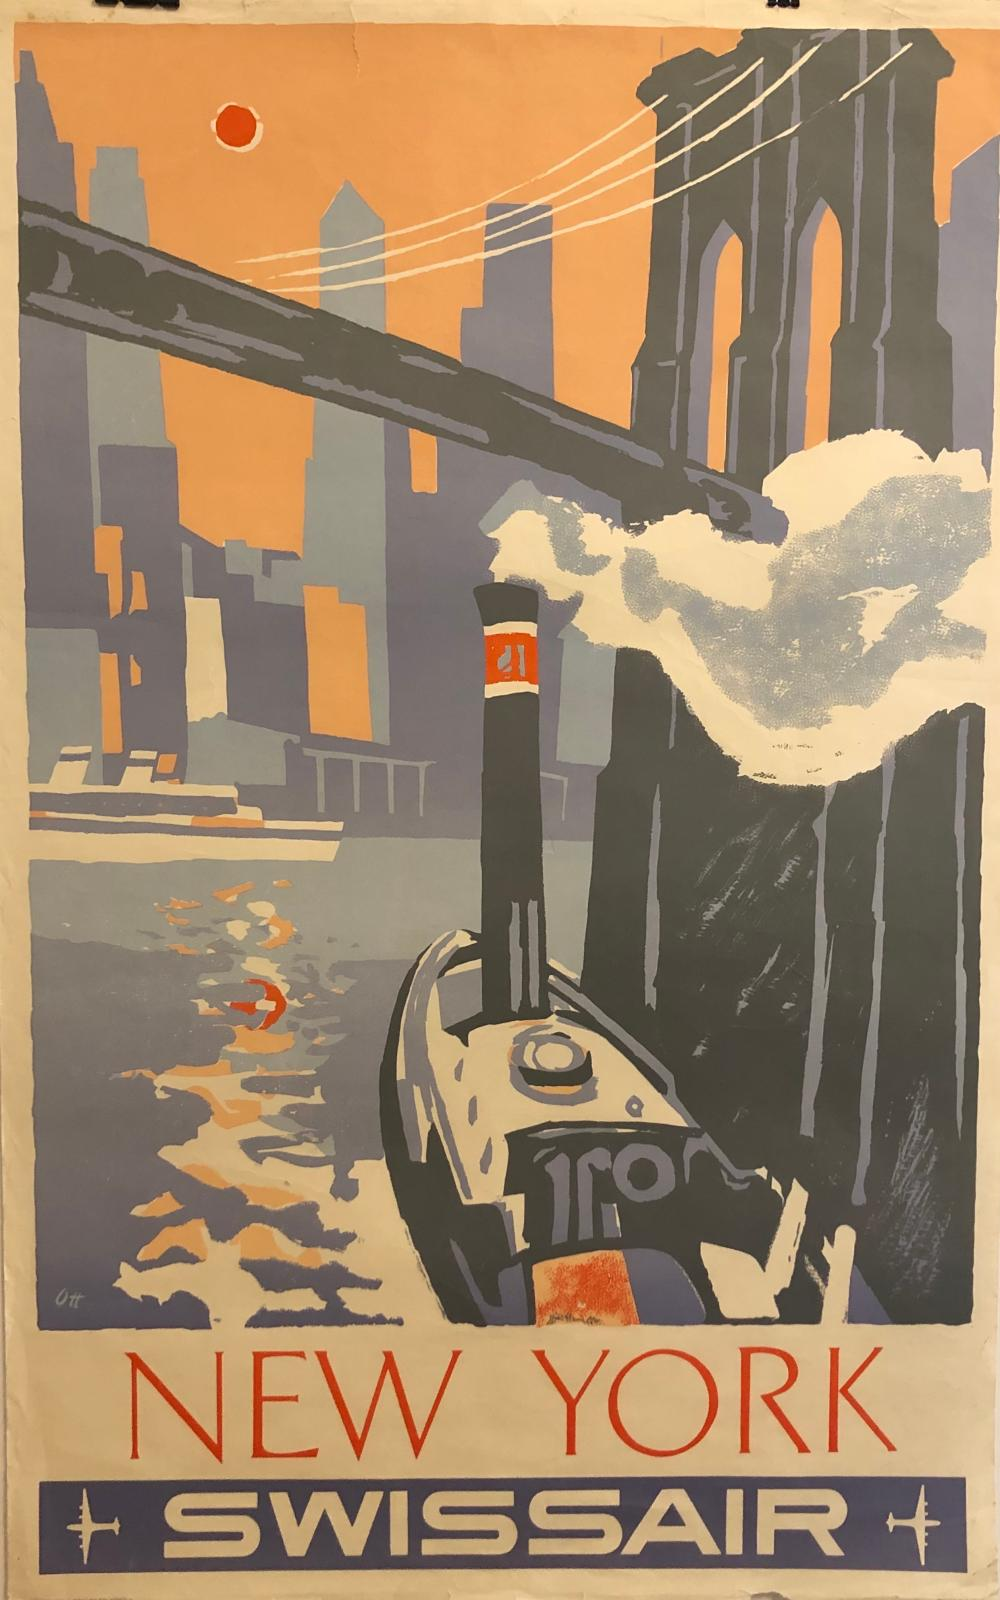 Swissair NYC original Vintage poster by Henry Ott